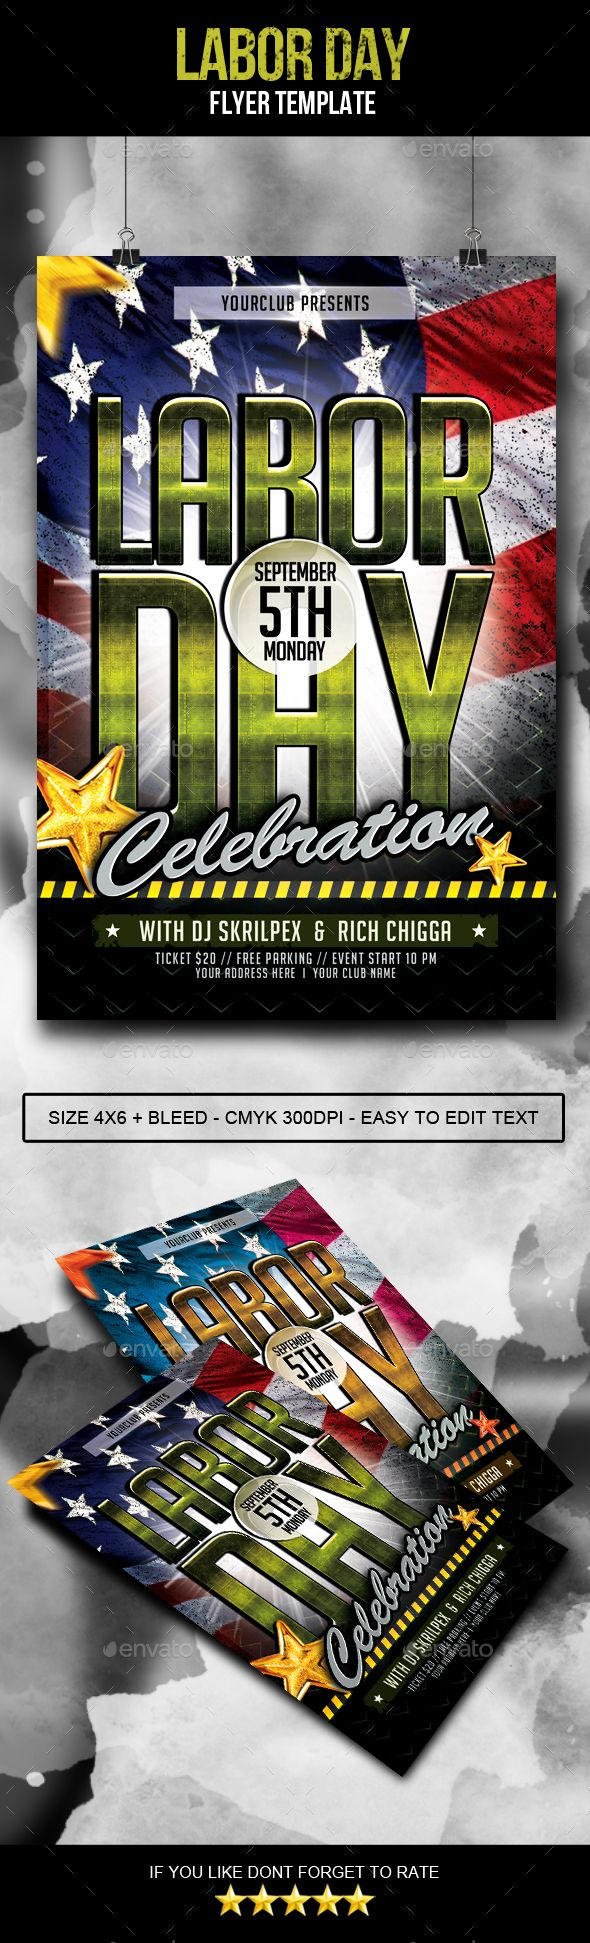 Labor Day Flyer | Labour, Flyer template and Template